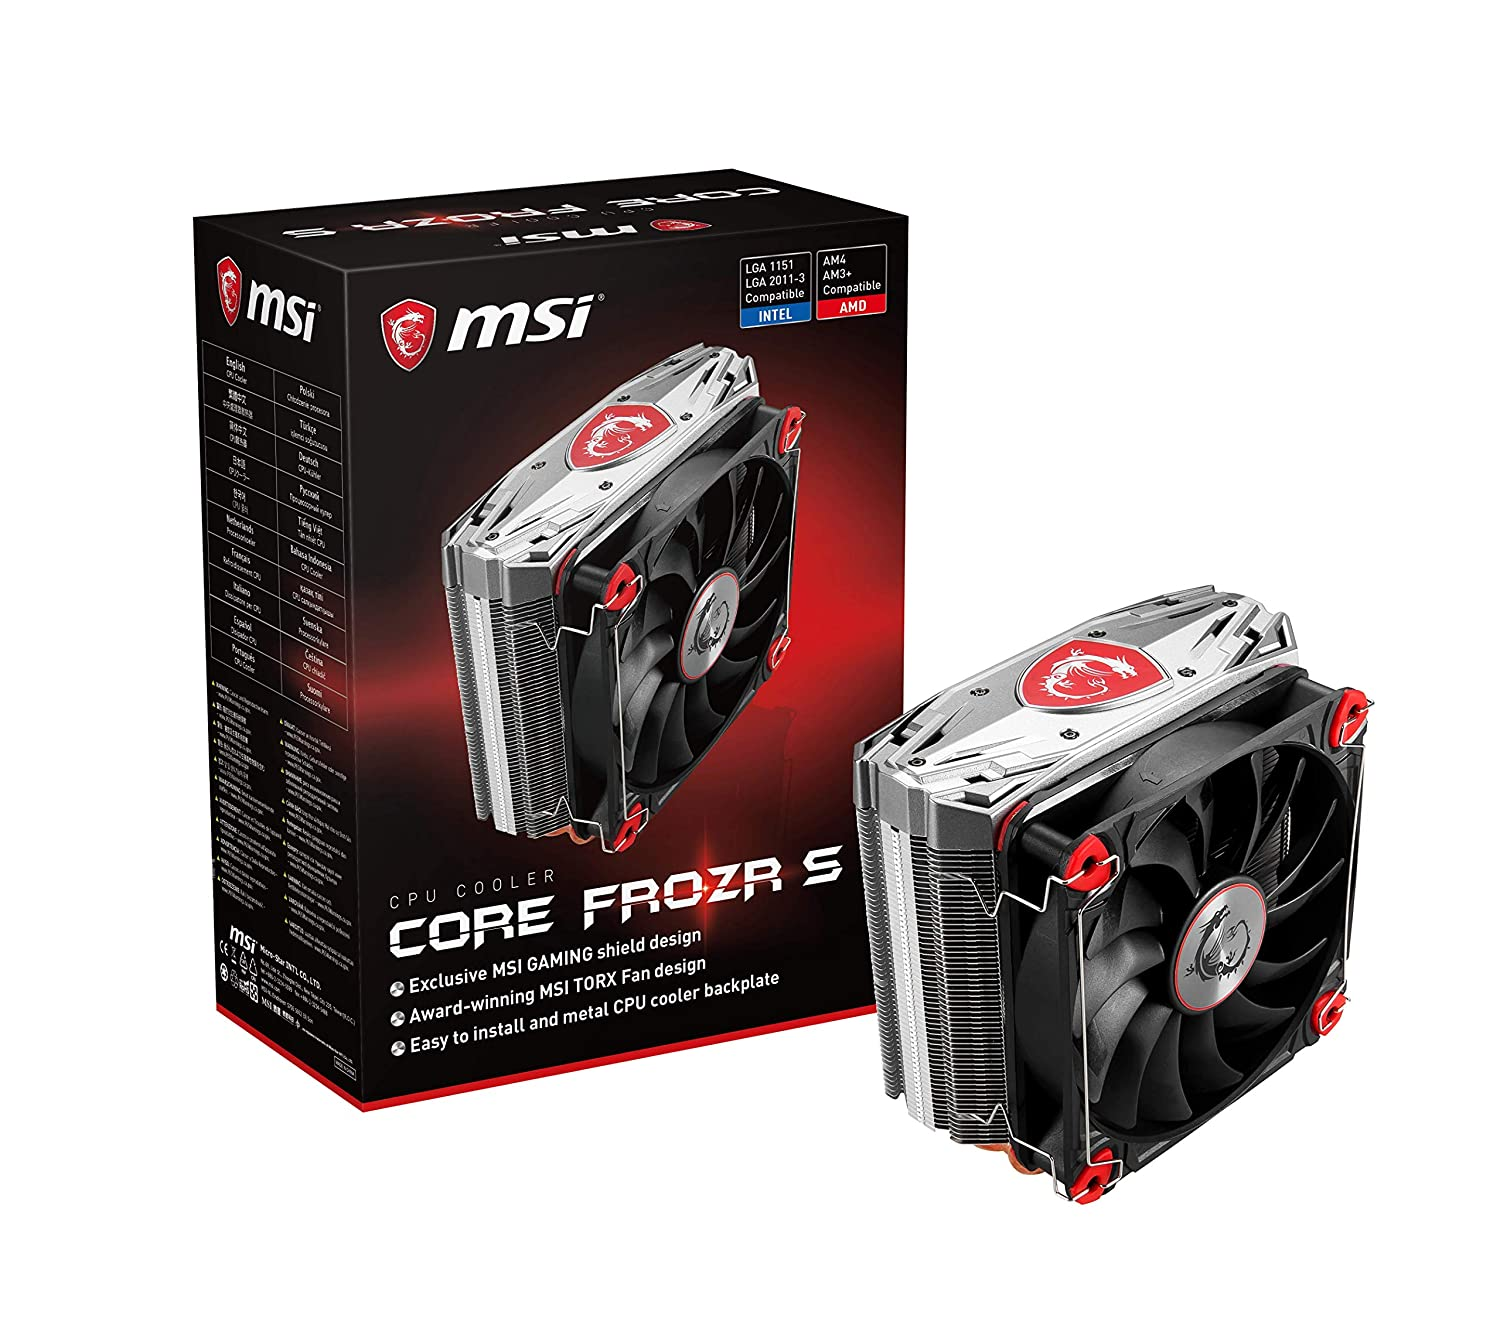 MSI CORE FROZR S CPU Air Cooler 4 Direct Contact Heat Pipes, 1 x 120 mm PWM TORX Fan, Iconic MSI Gaming Shield Design Silver Cover, Compatible with Intel and AMD Platforms - E32-0802210-A87